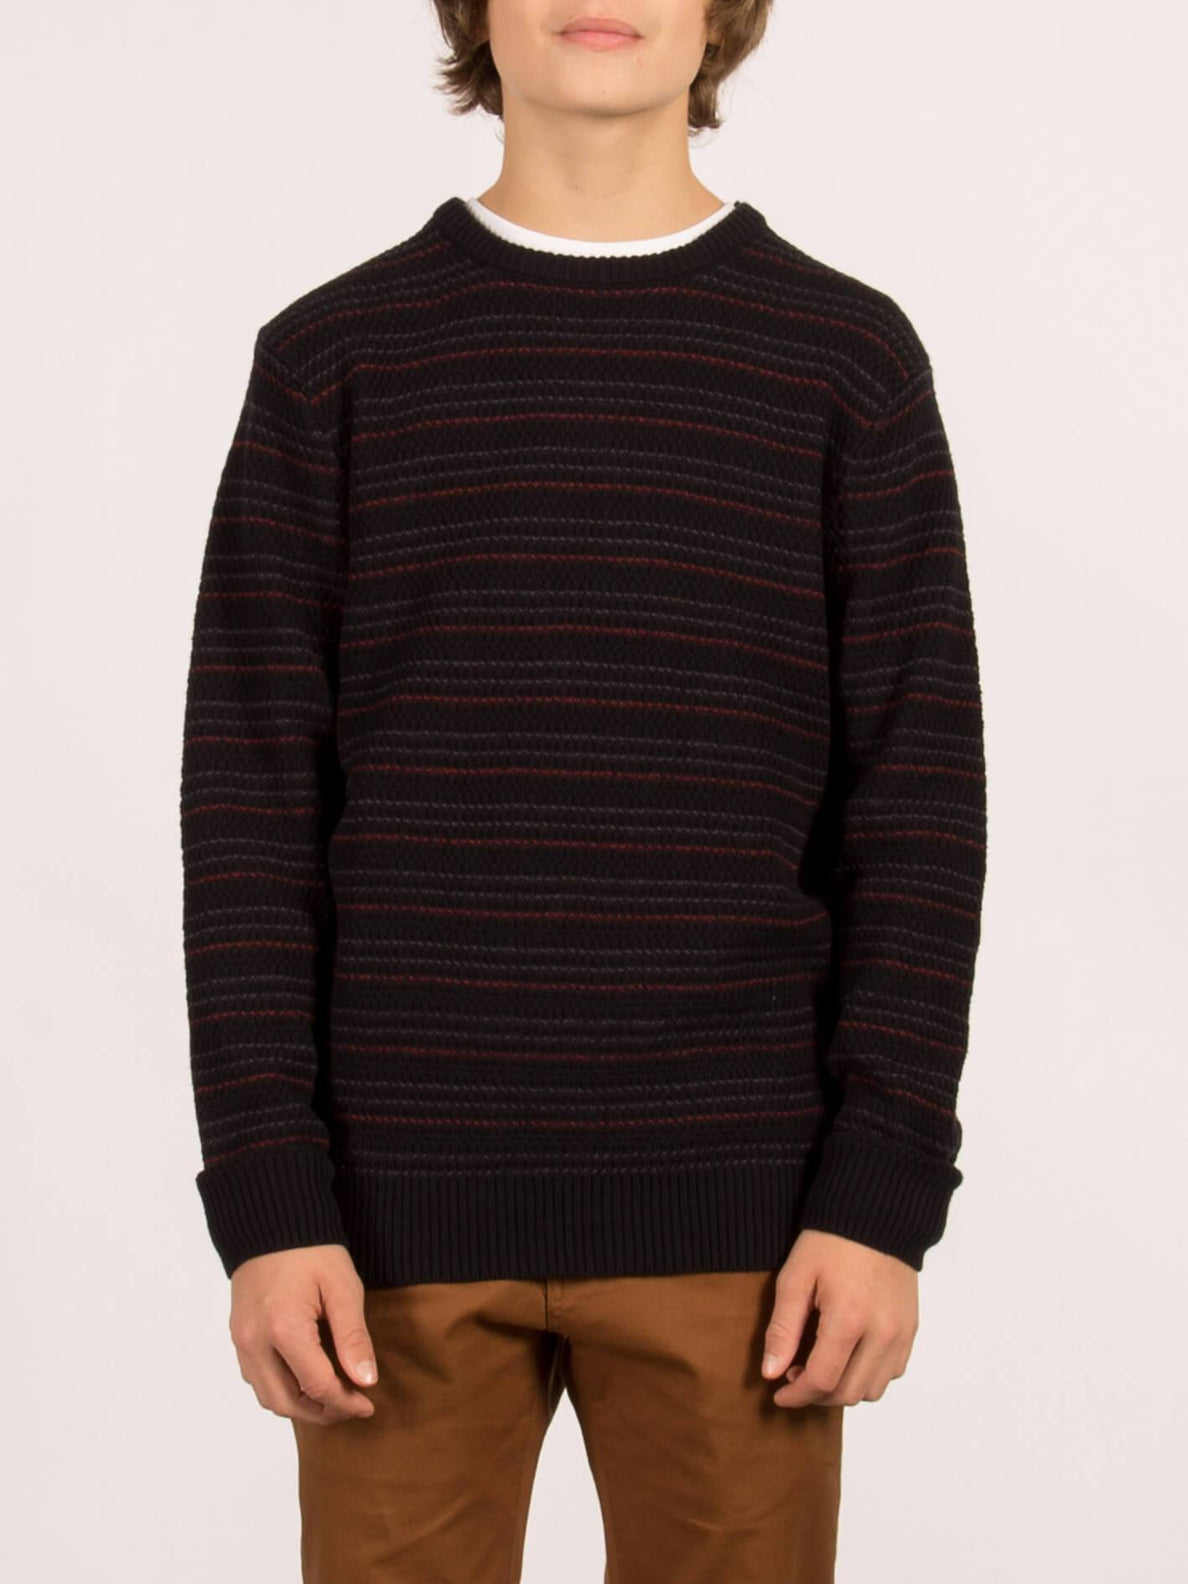 NEWSTONE SWEATER NAVY (Niňo)